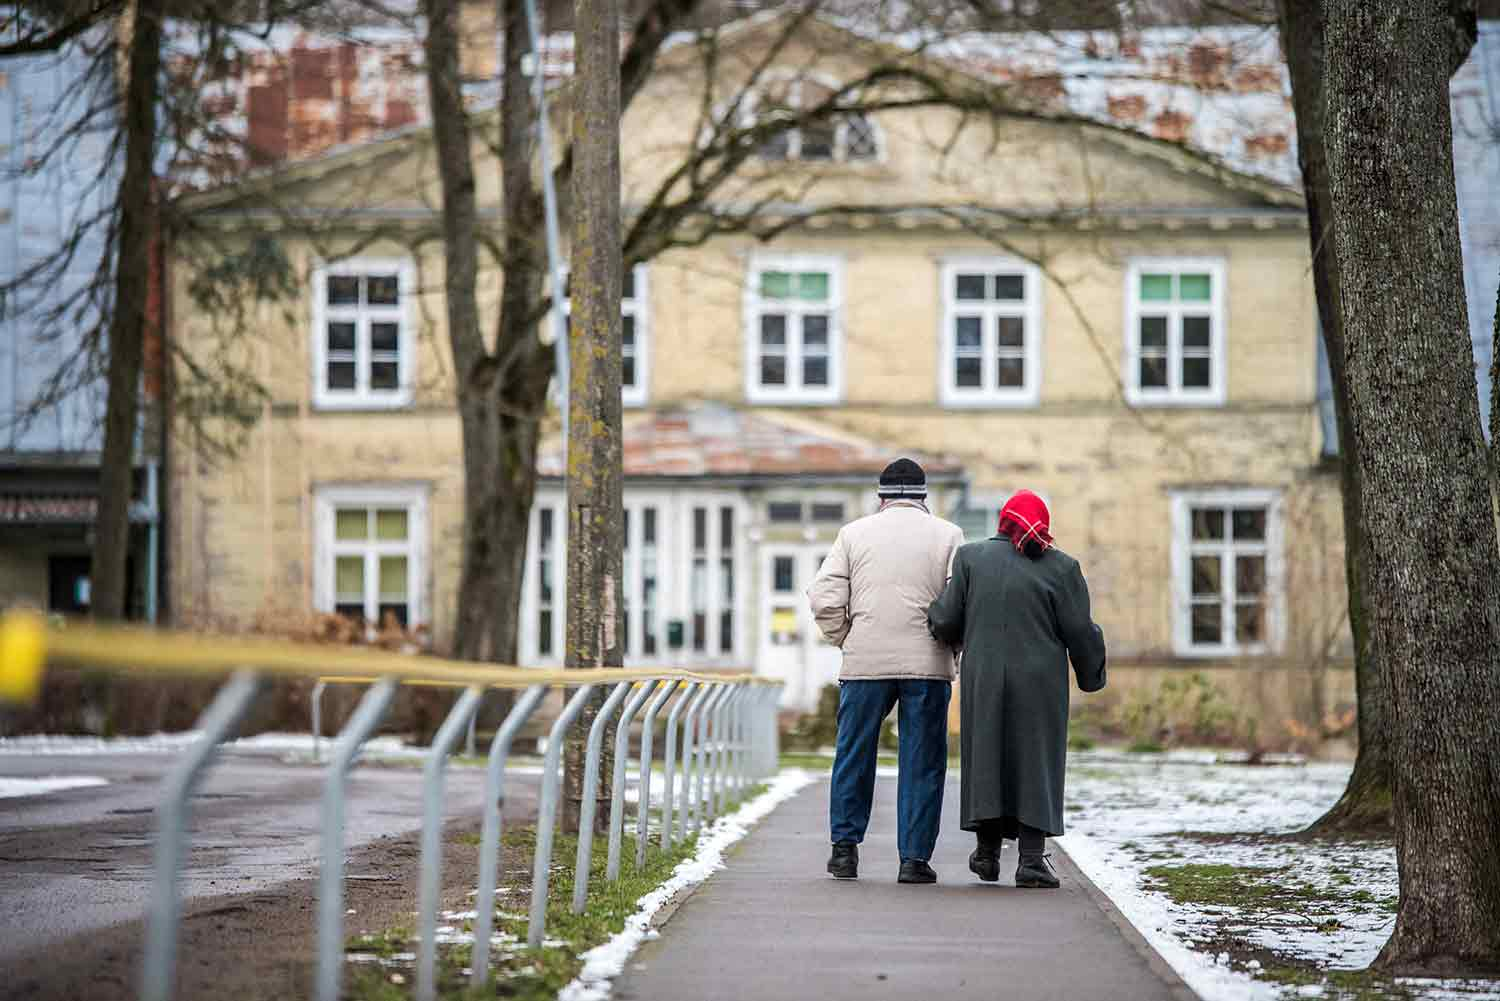 Two elderly people man and woman are walking - final expense insurance